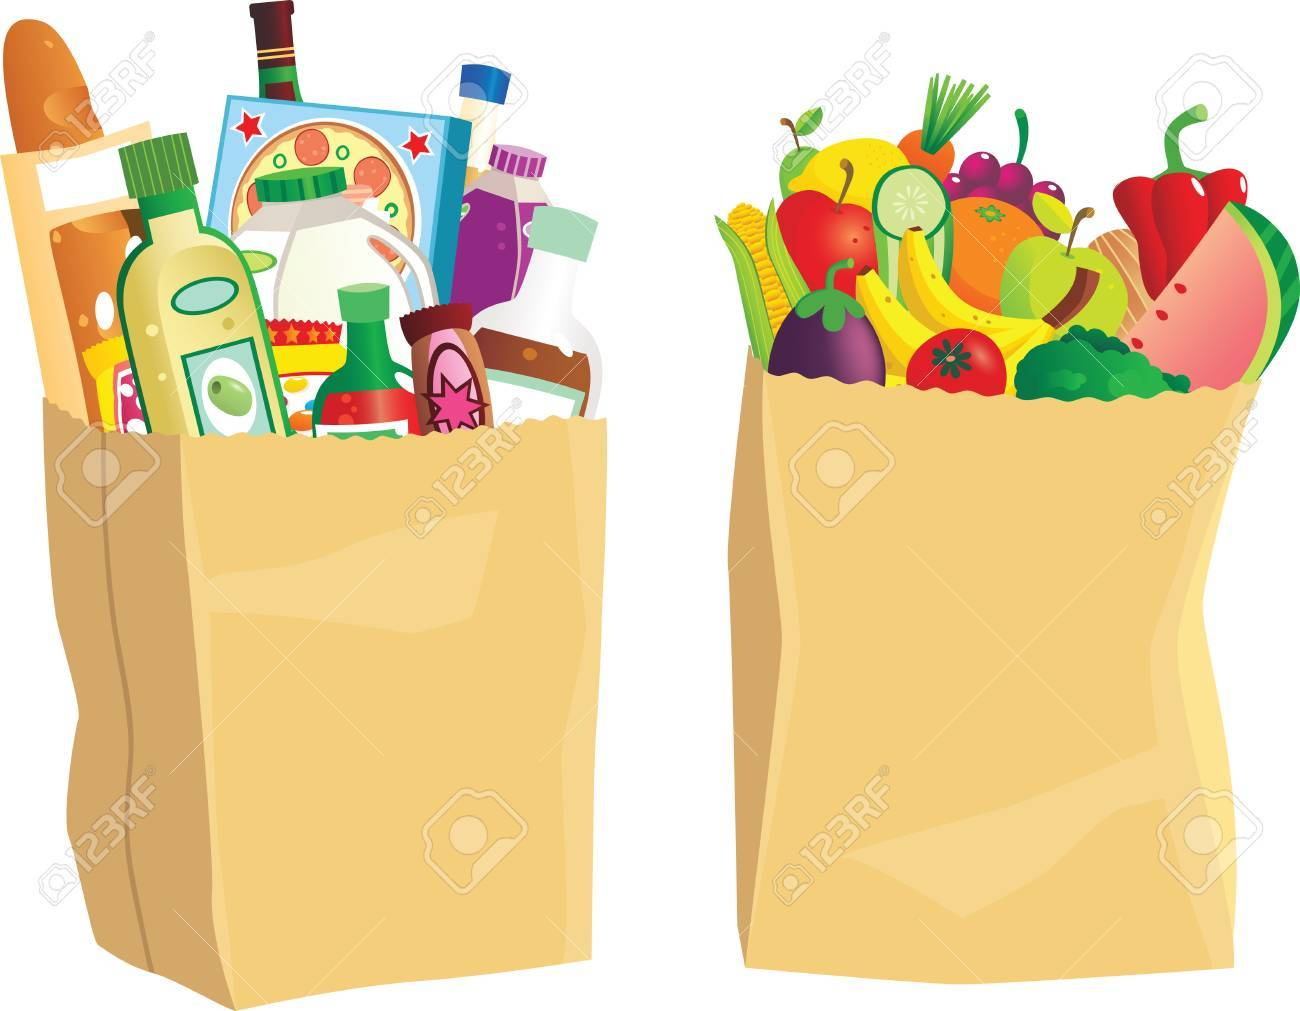 Grocery bag clipart vector library Grocery bag clipart 5 » Clipart Portal vector library